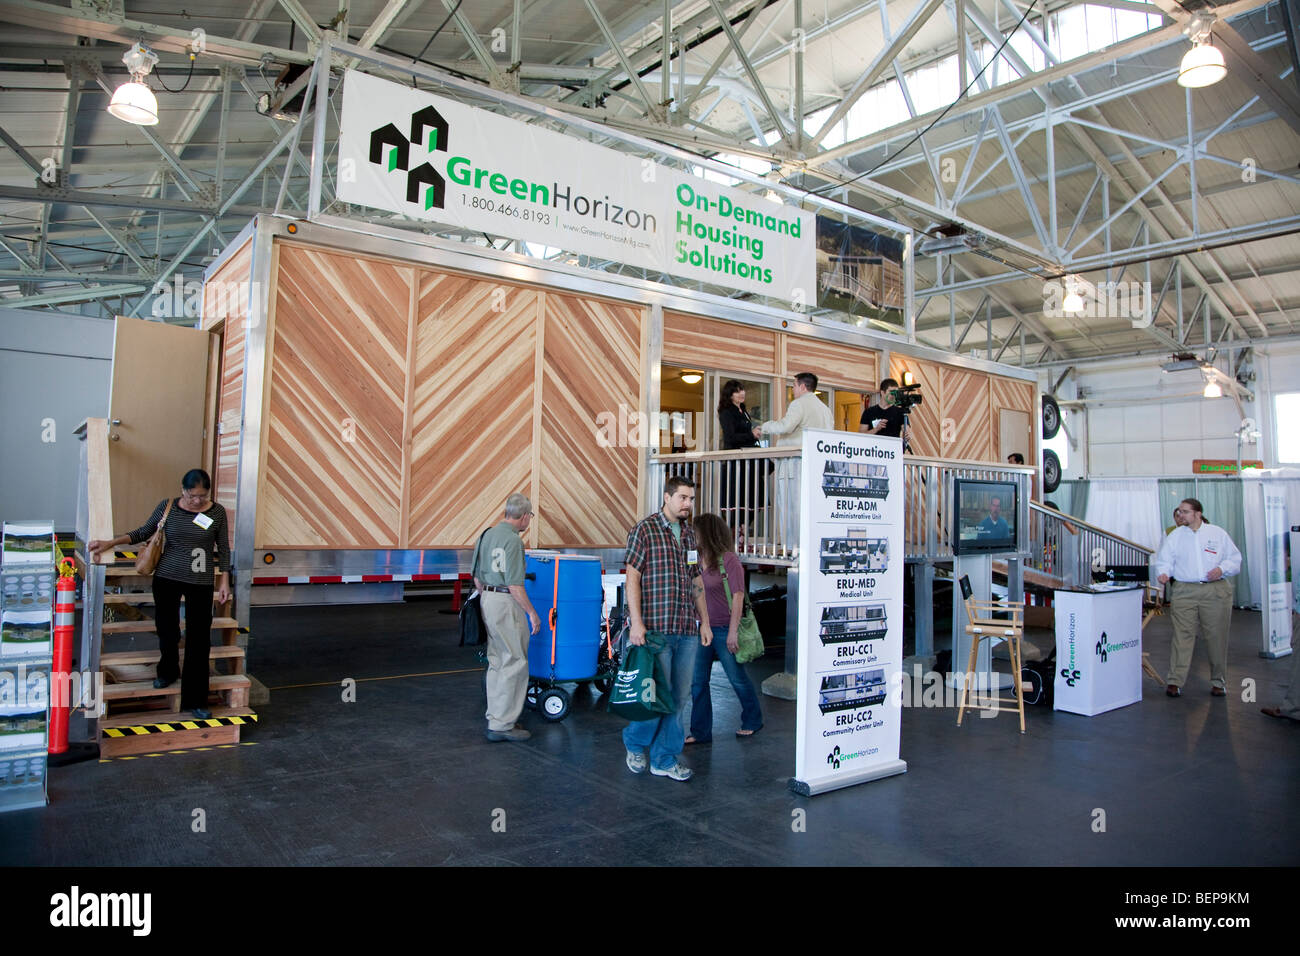 Green Horizon Manufacturing green building portable, on-demand emergency housing on display at exposition. United - Stock Image